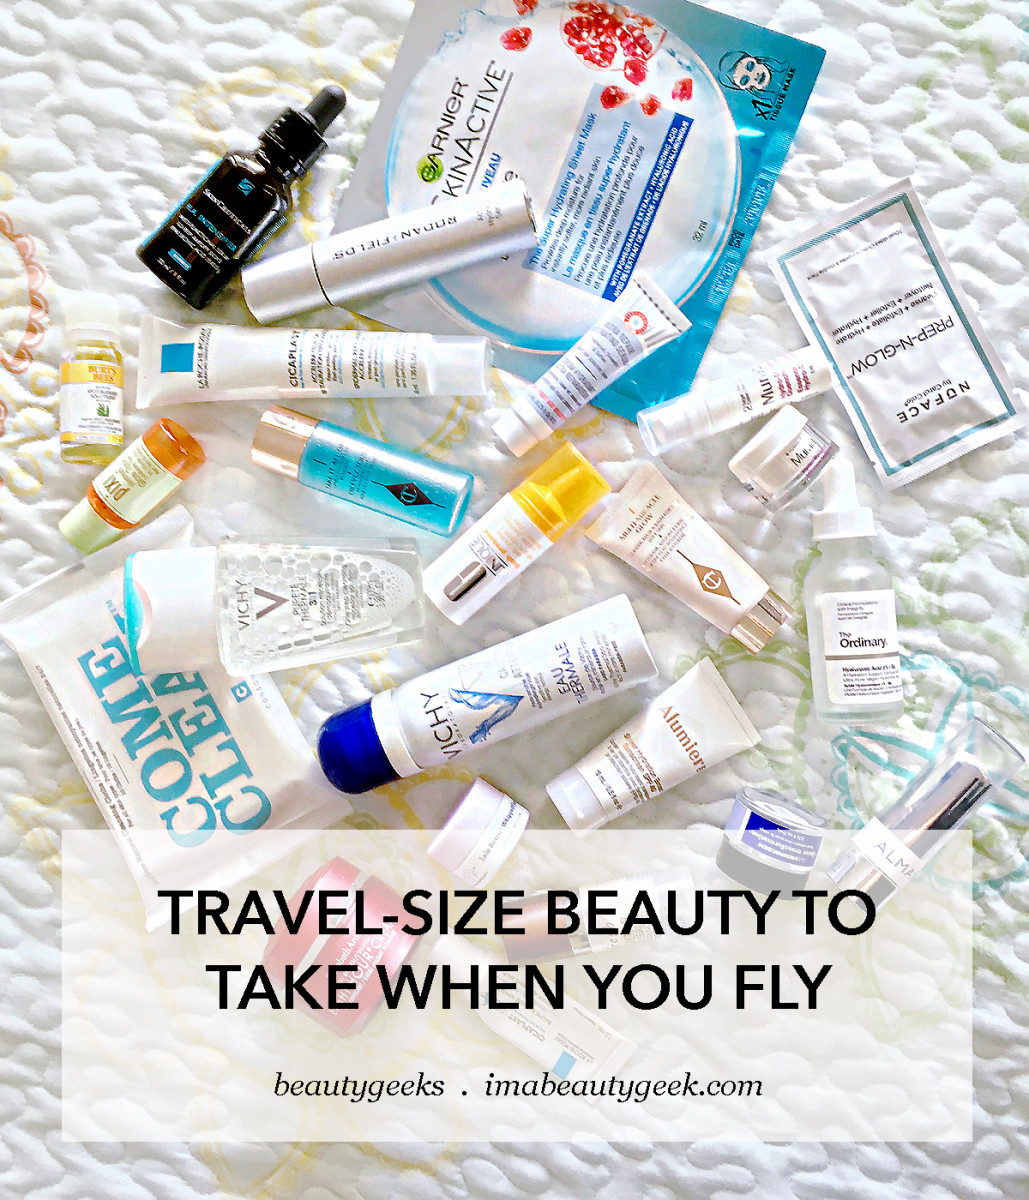 Travel-size skincare to take in your carry-on